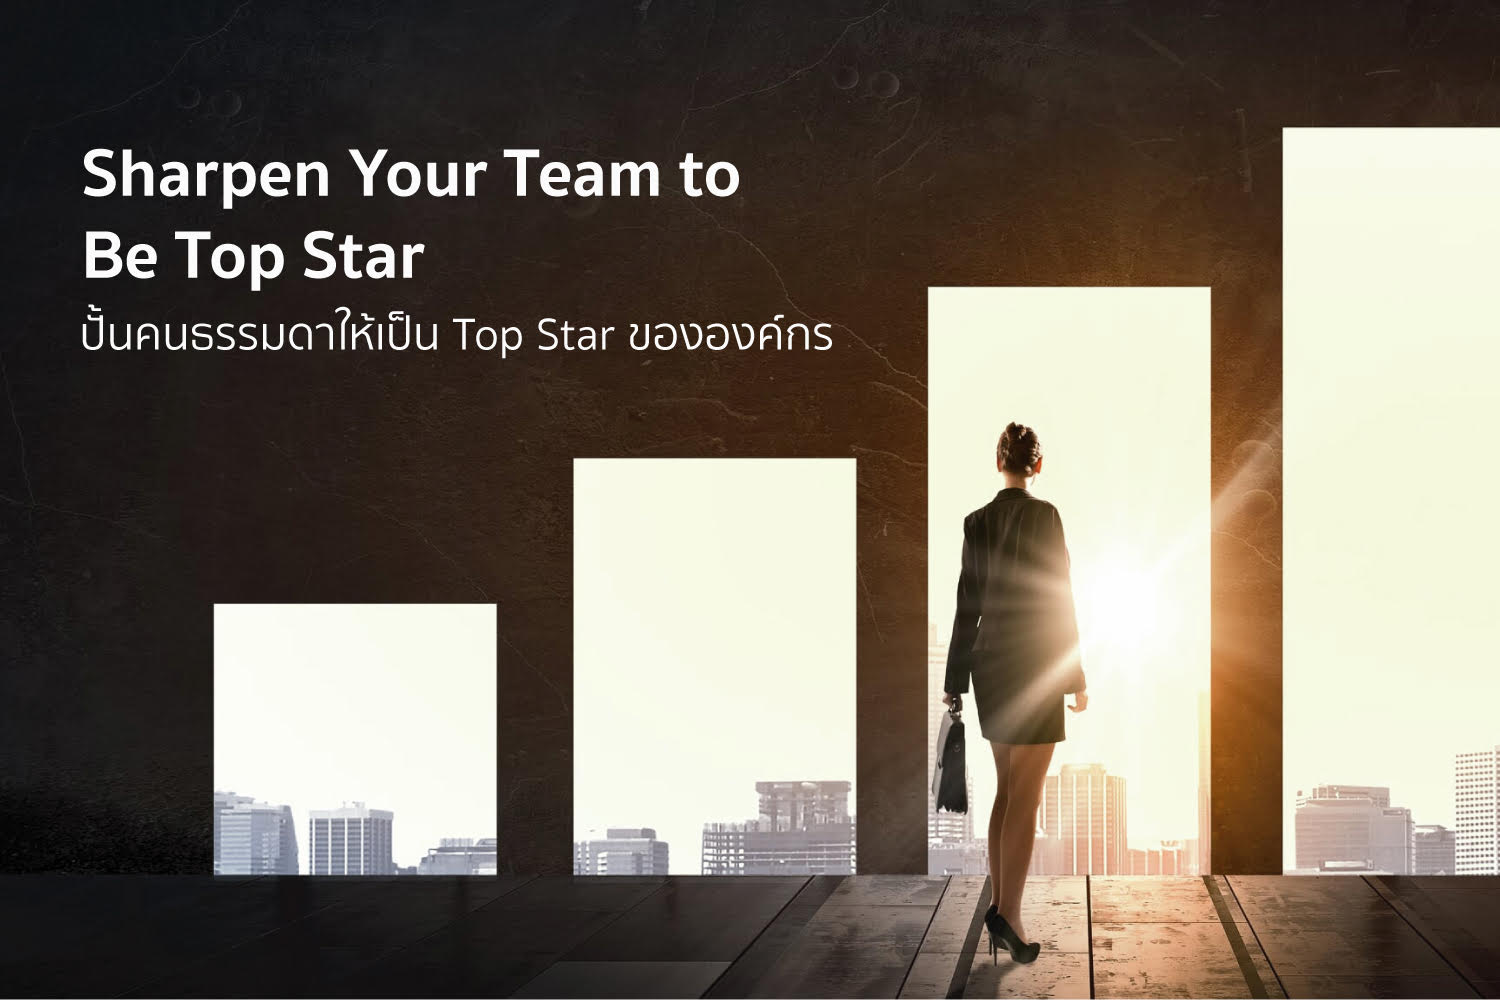 SHARPEN YOUR TEAM TO BE TOP STAR